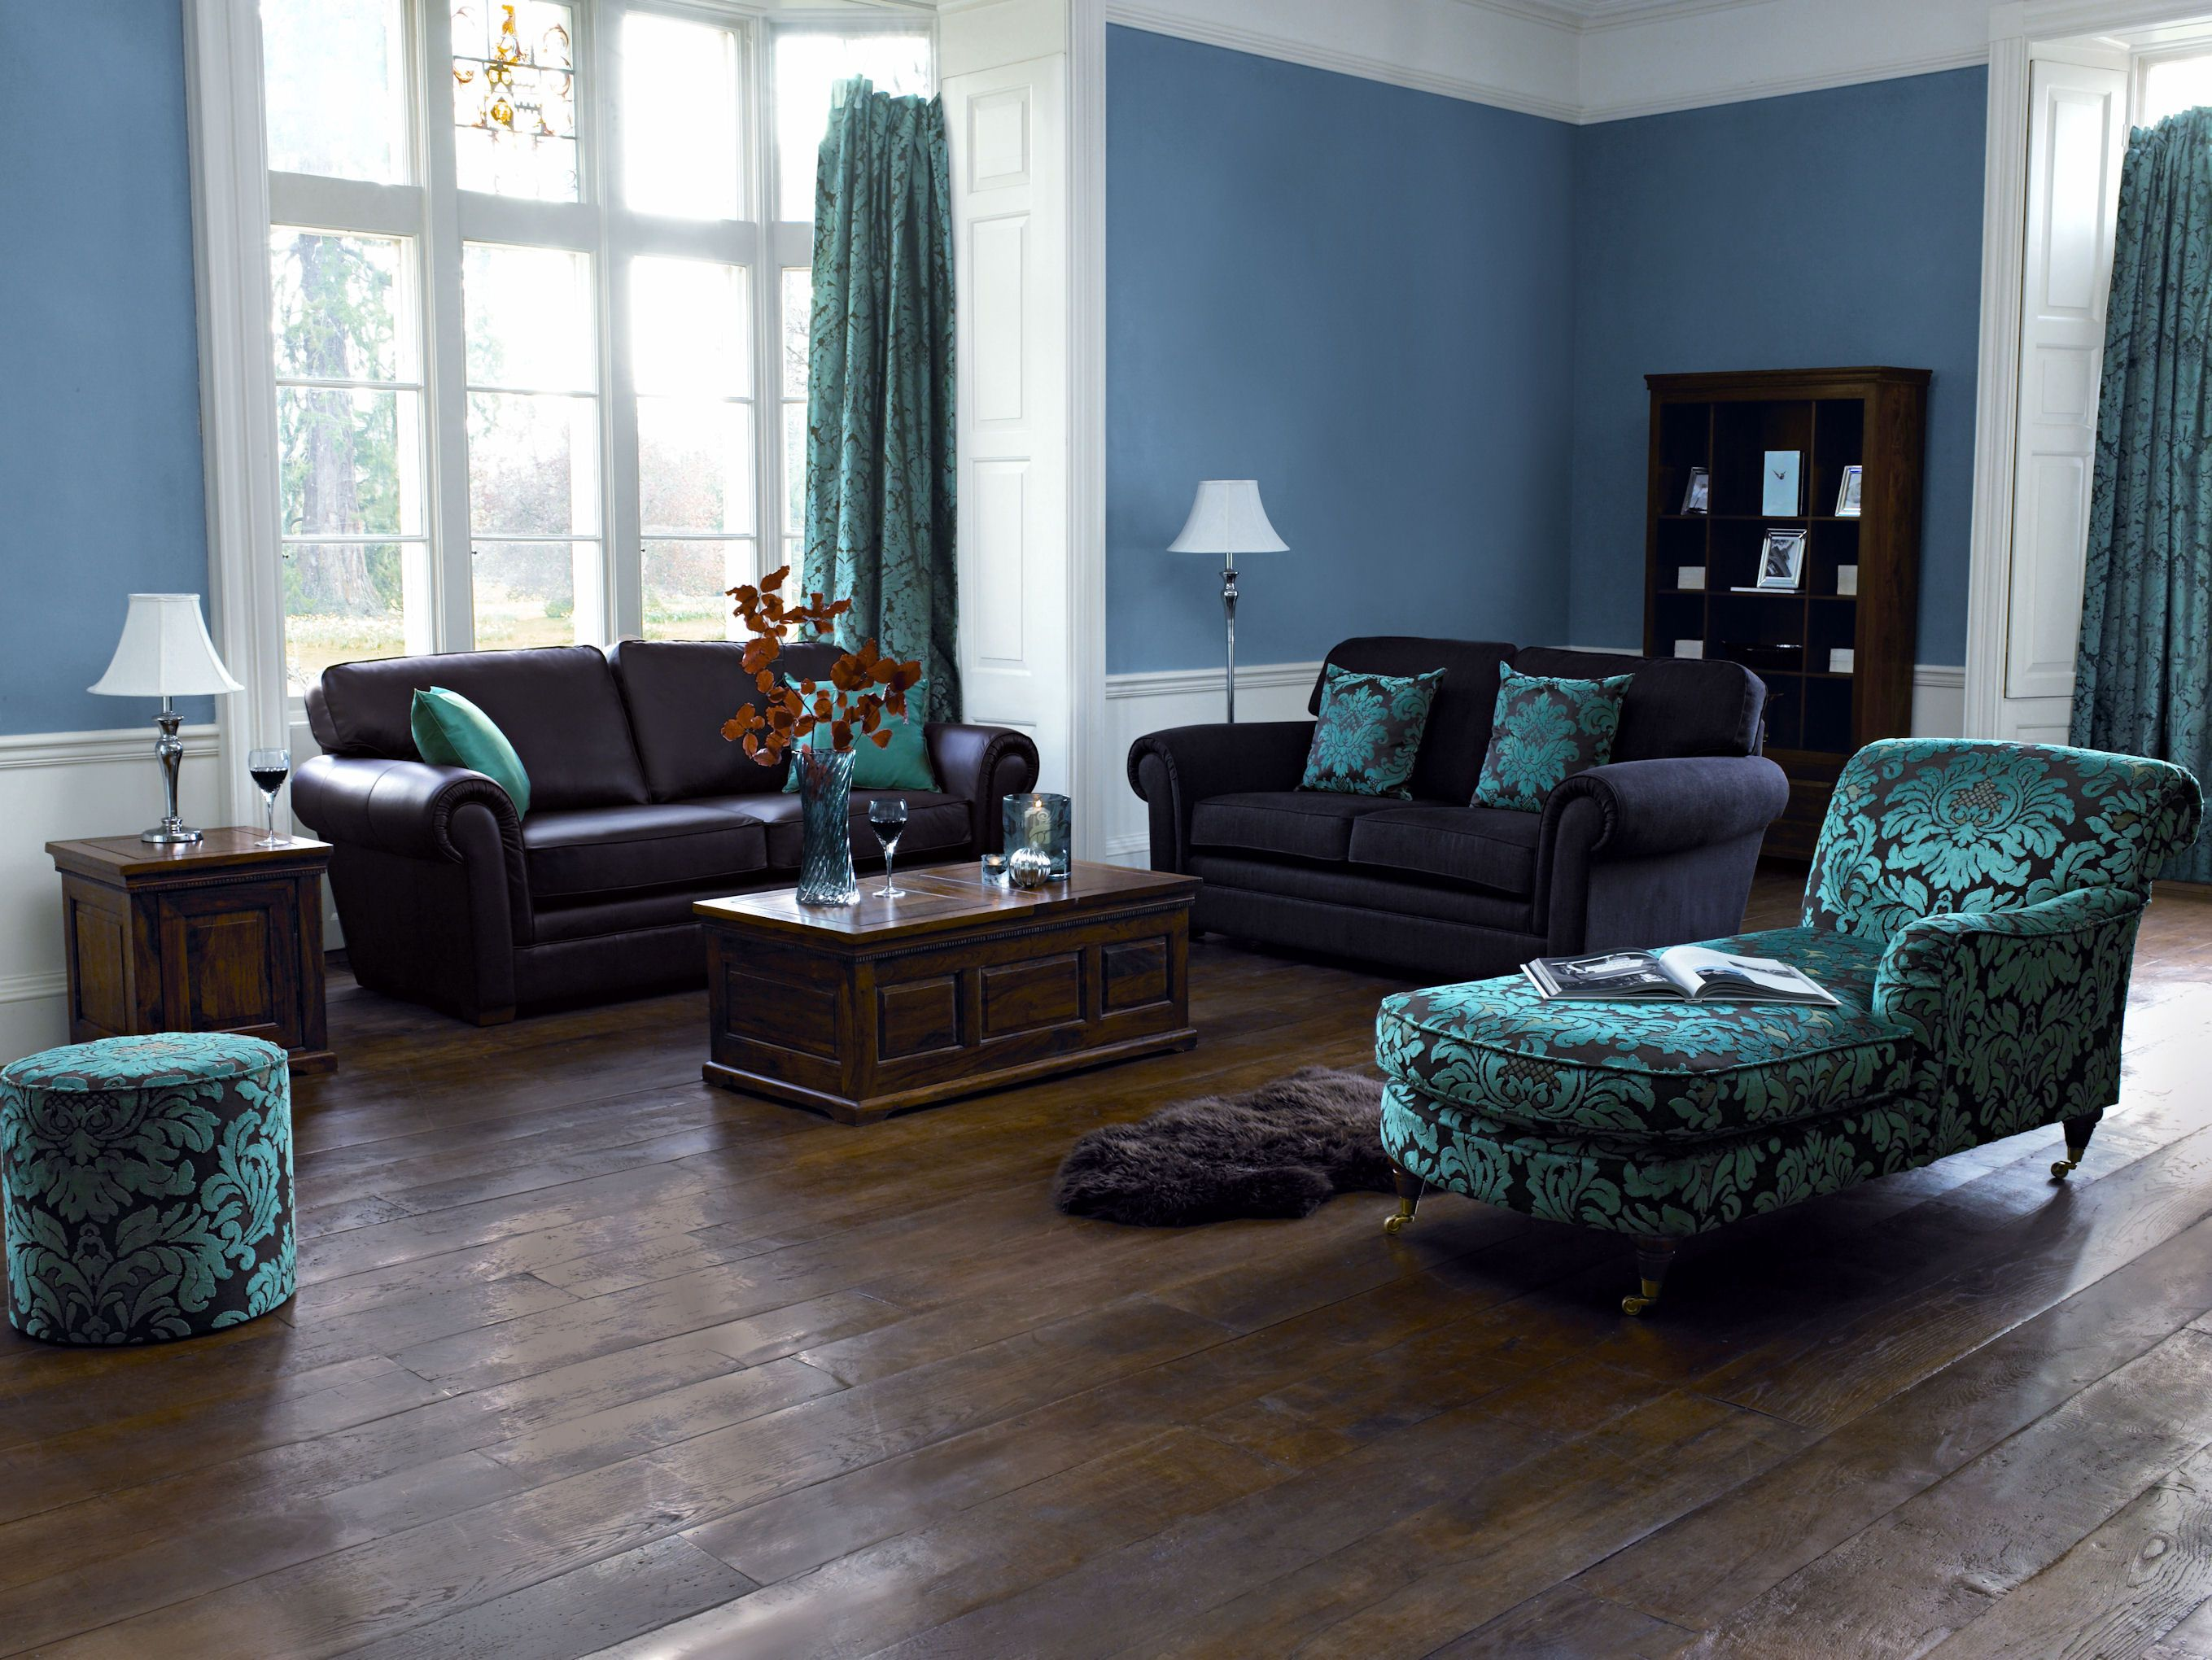 Choosing Colors For Your Home Brown And Blue Living Room Brown